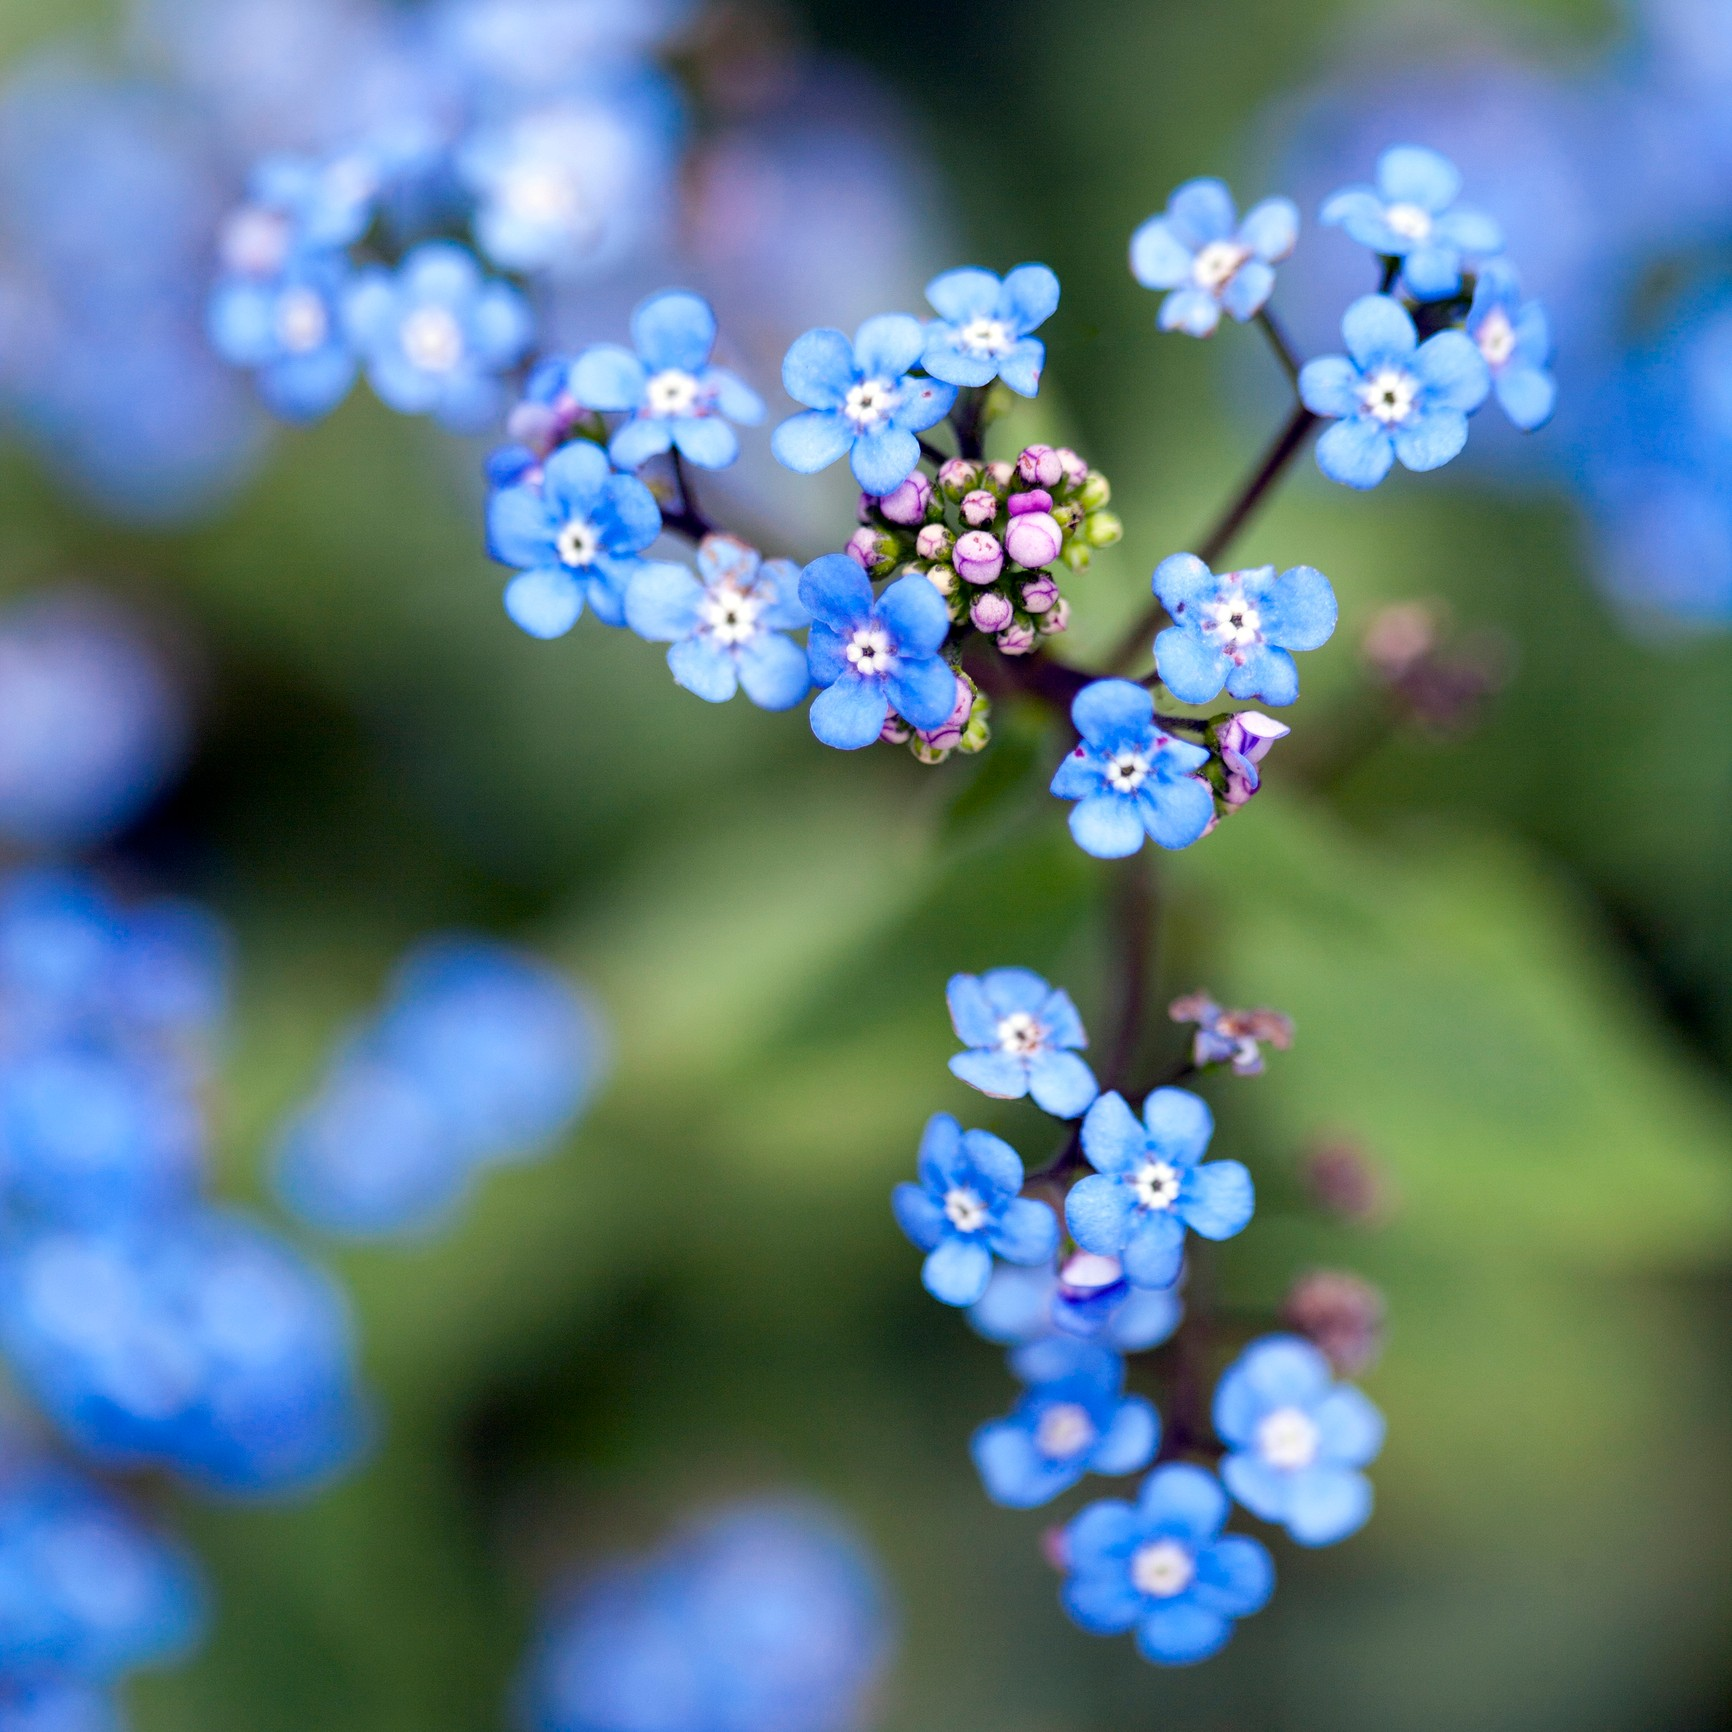 Close up of tiny blue forget-me-not flowers on branch